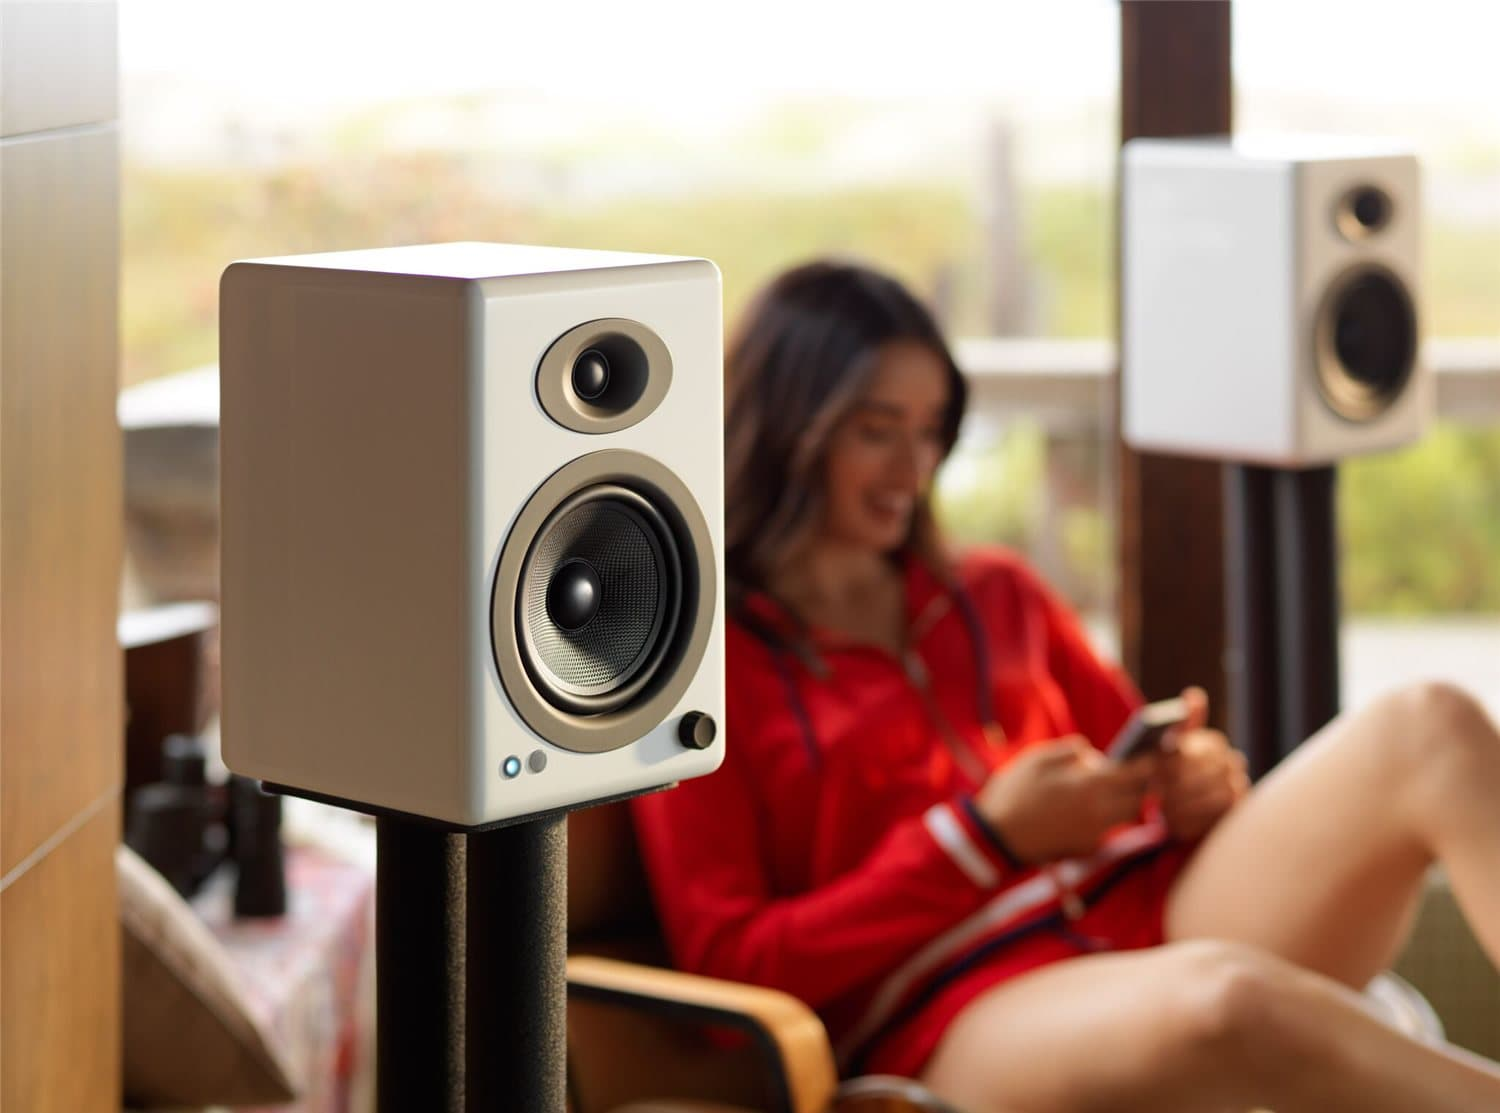 Premium, Wireless Bookshelf Speakers with aptX HD support – AudioEngine A5+ Review